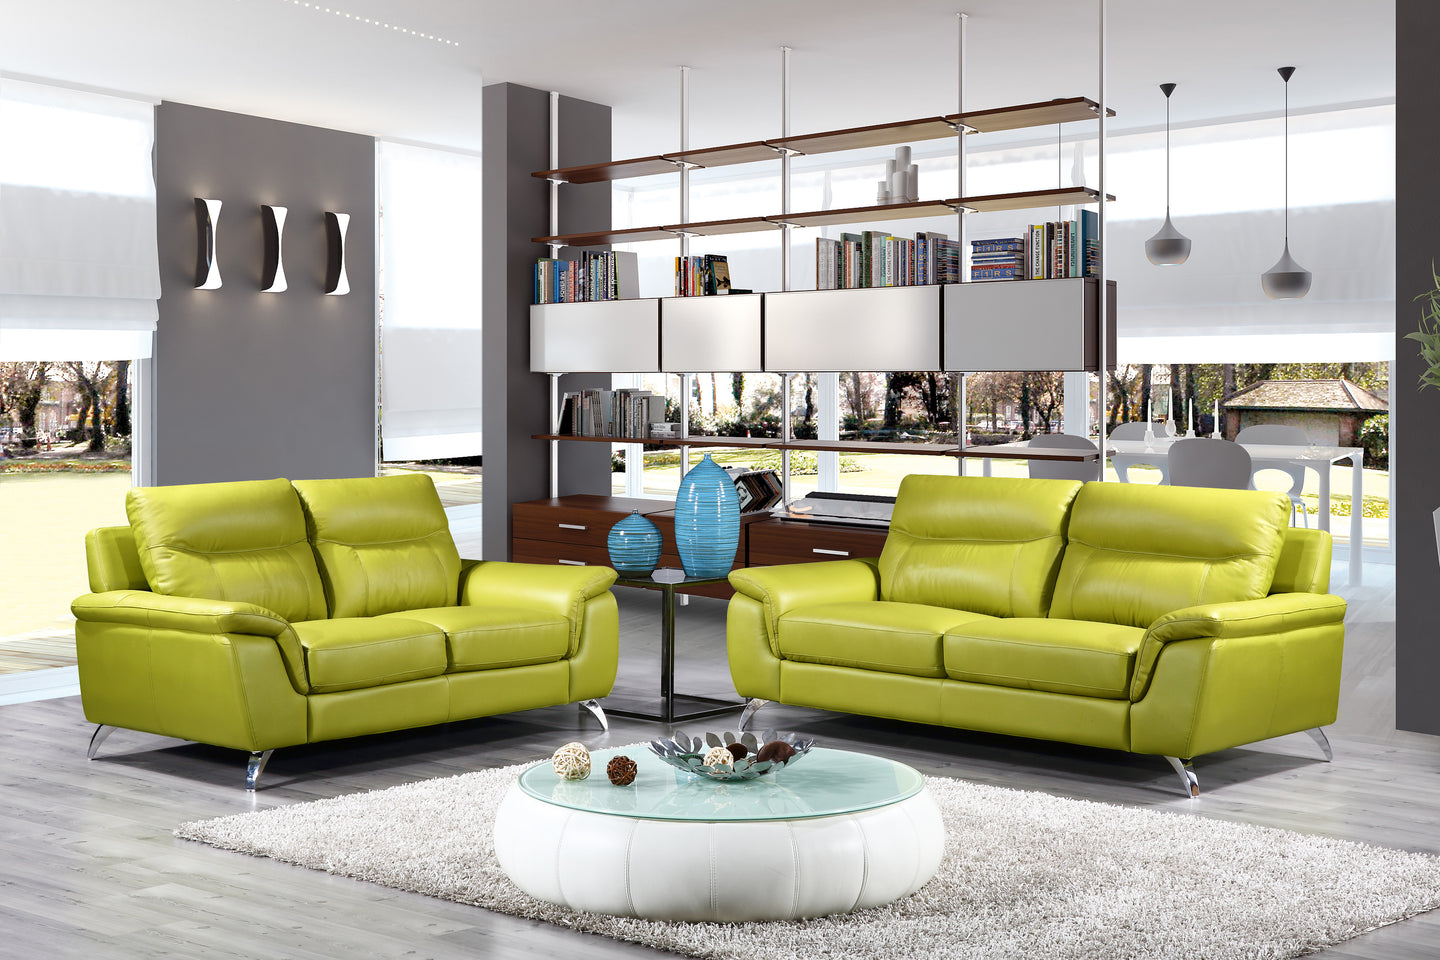 Cortesi Home Chicago Genuine Leather Sofa U0026 Loveseat Set, Green